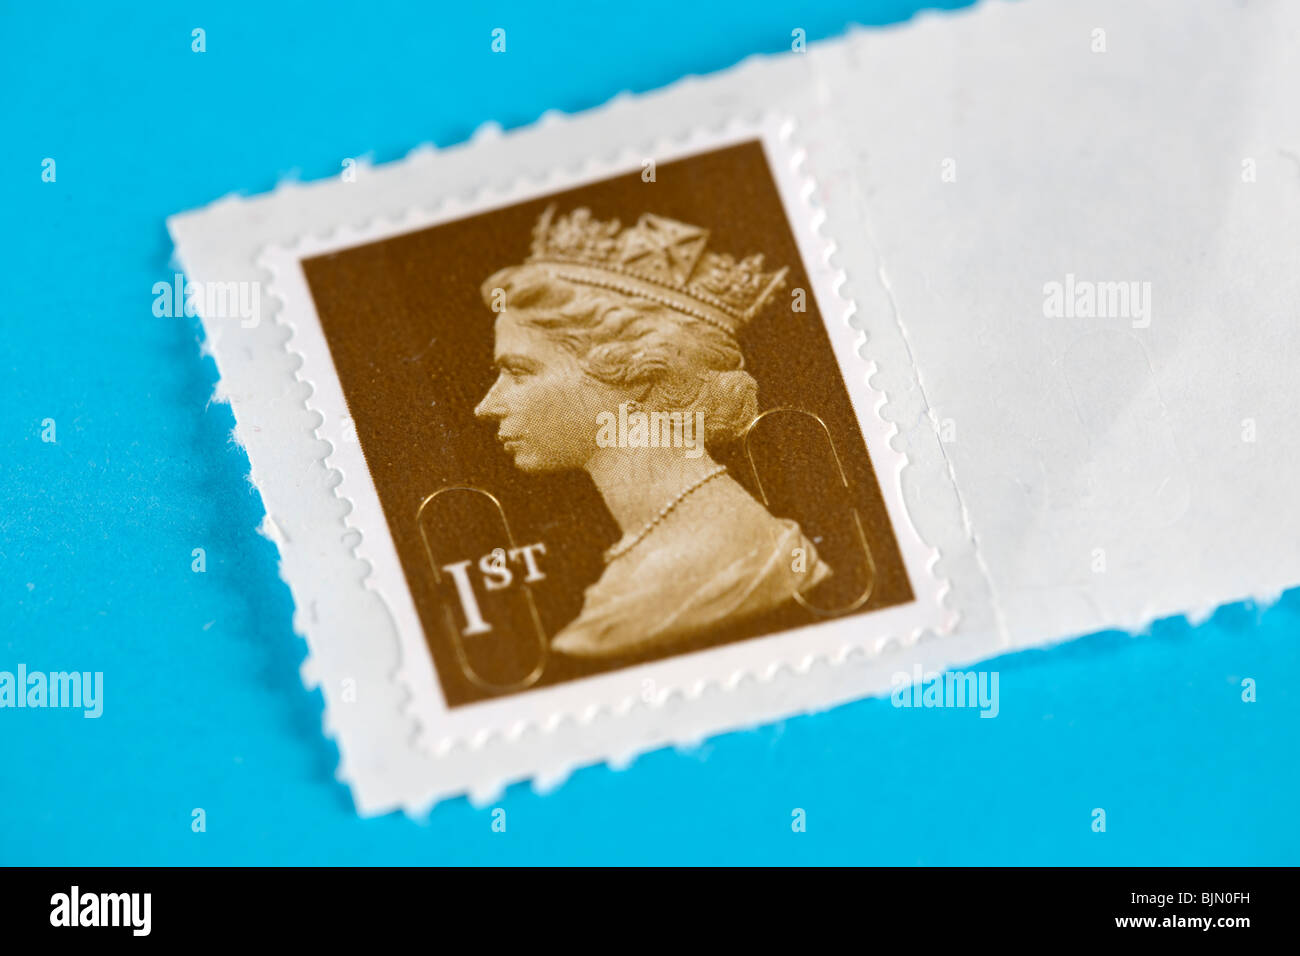 British first class postage stamp.  Editorial use only - Stock Image